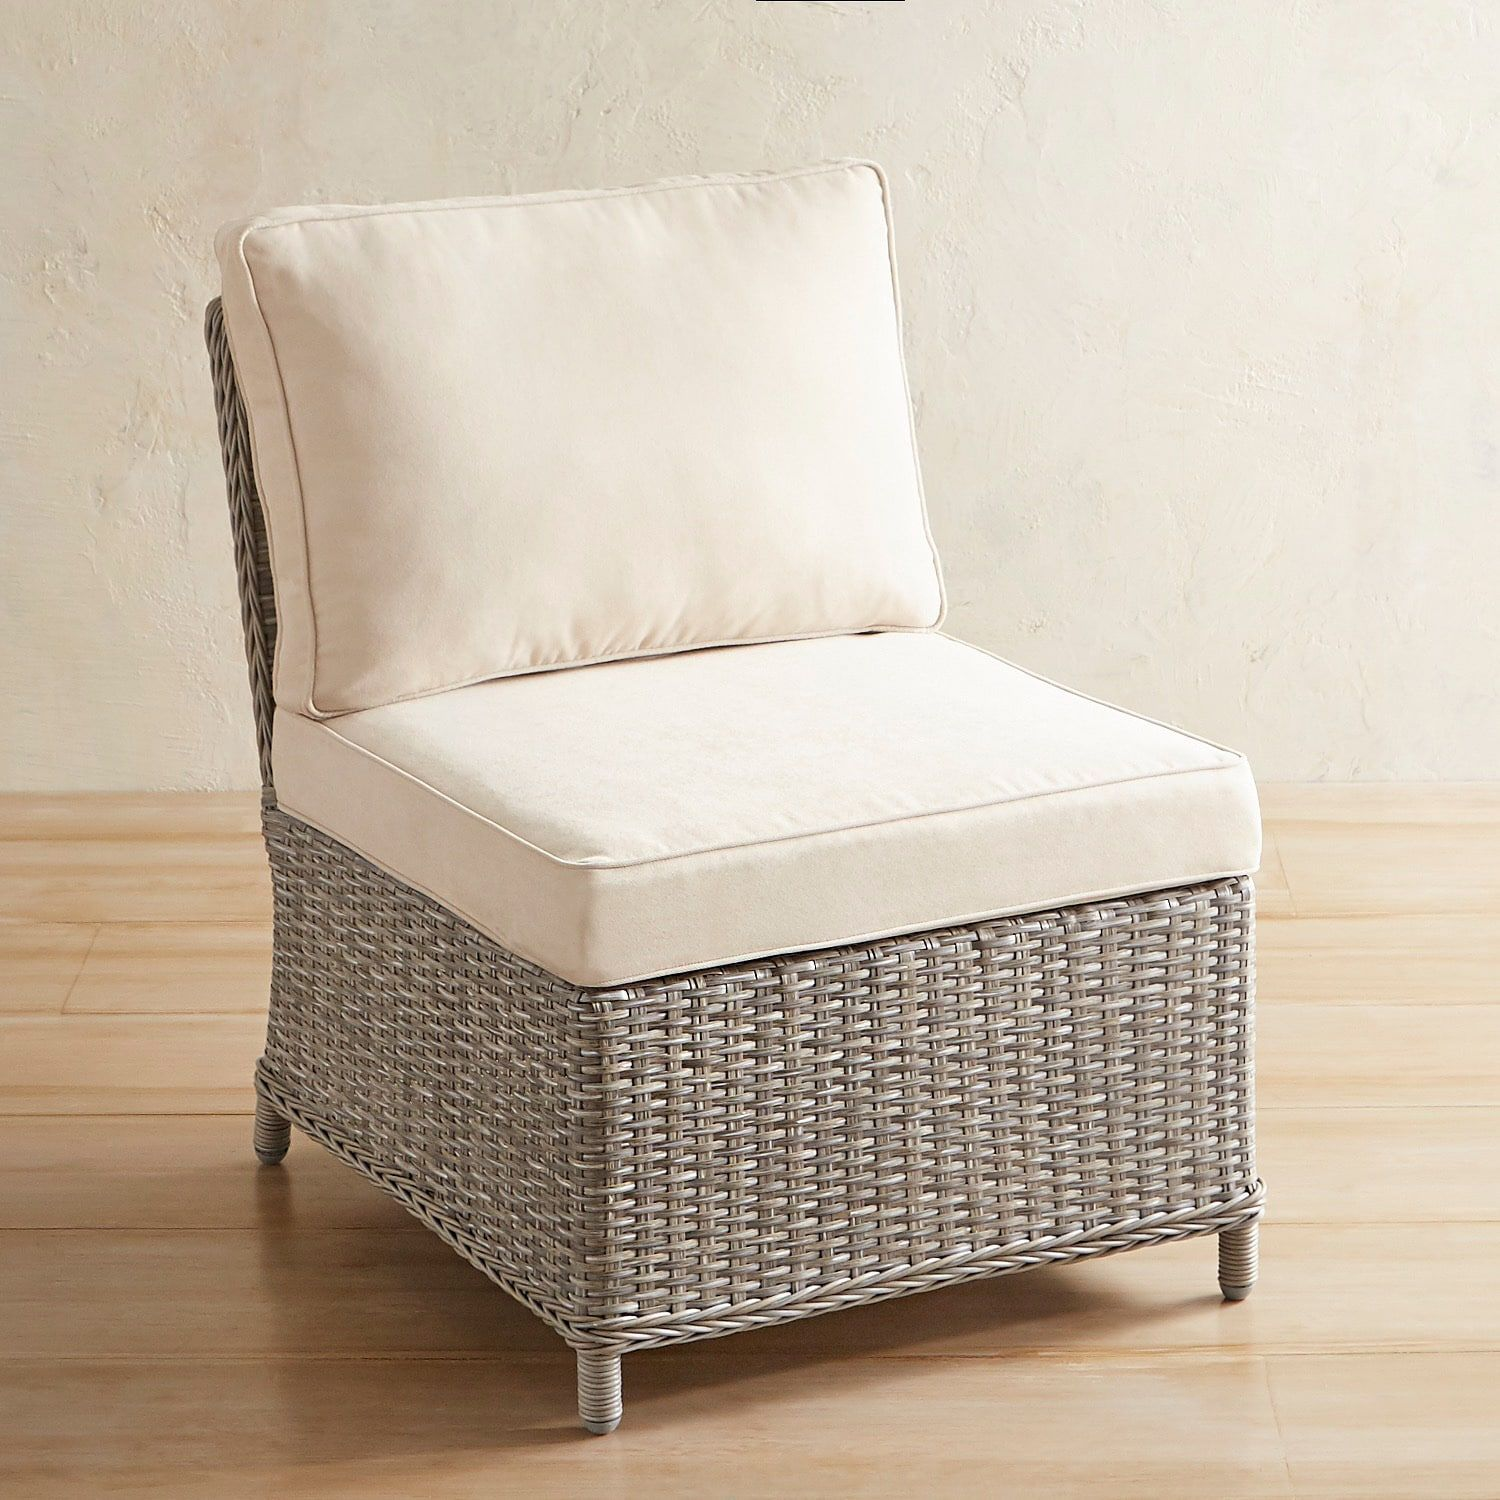 Stupendous Newport Gray Armless Chair Products Armless Chair Chair Caraccident5 Cool Chair Designs And Ideas Caraccident5Info